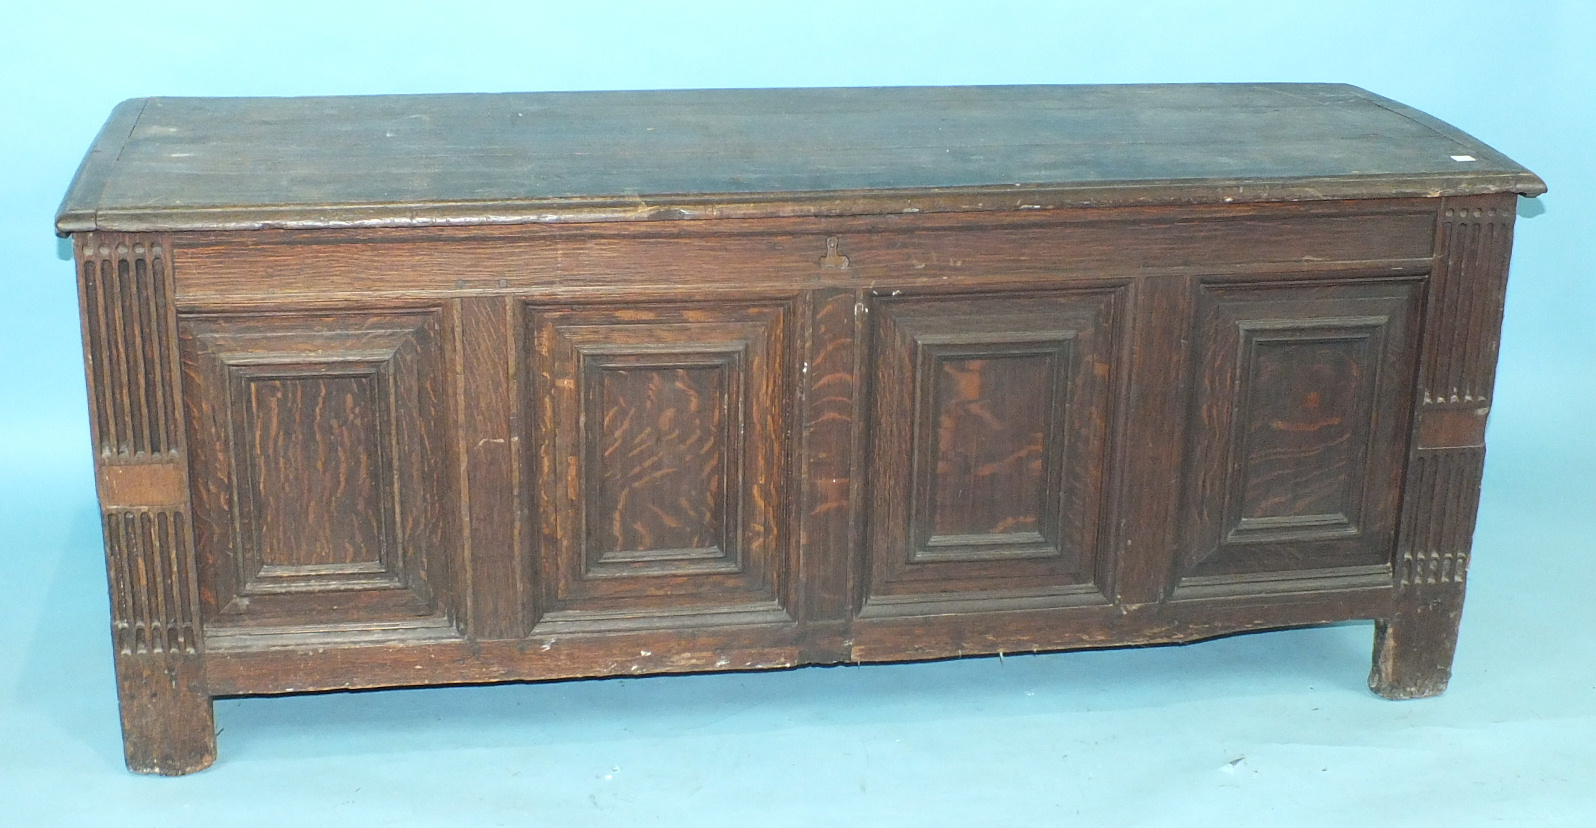 Lot 40 - A large antique oak panelled coffer, the fielded panels within reeded stiles extended to form